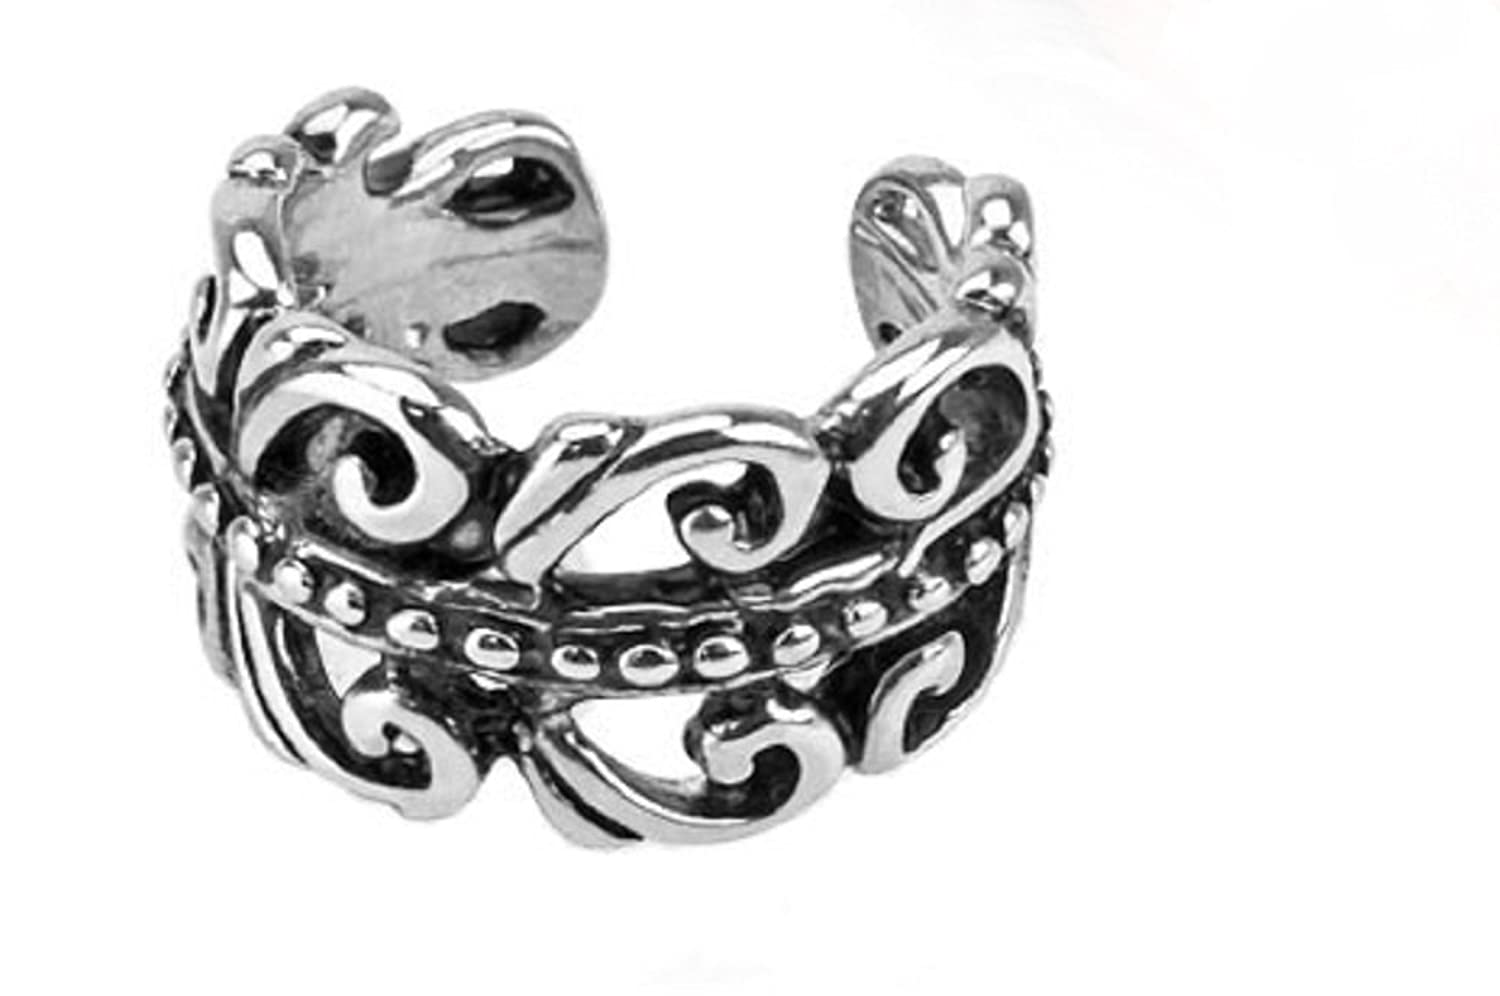 Polished Carved Swirls Freedom Fashion 316L Surgical Steel Non-Piercing Ear Cuffs